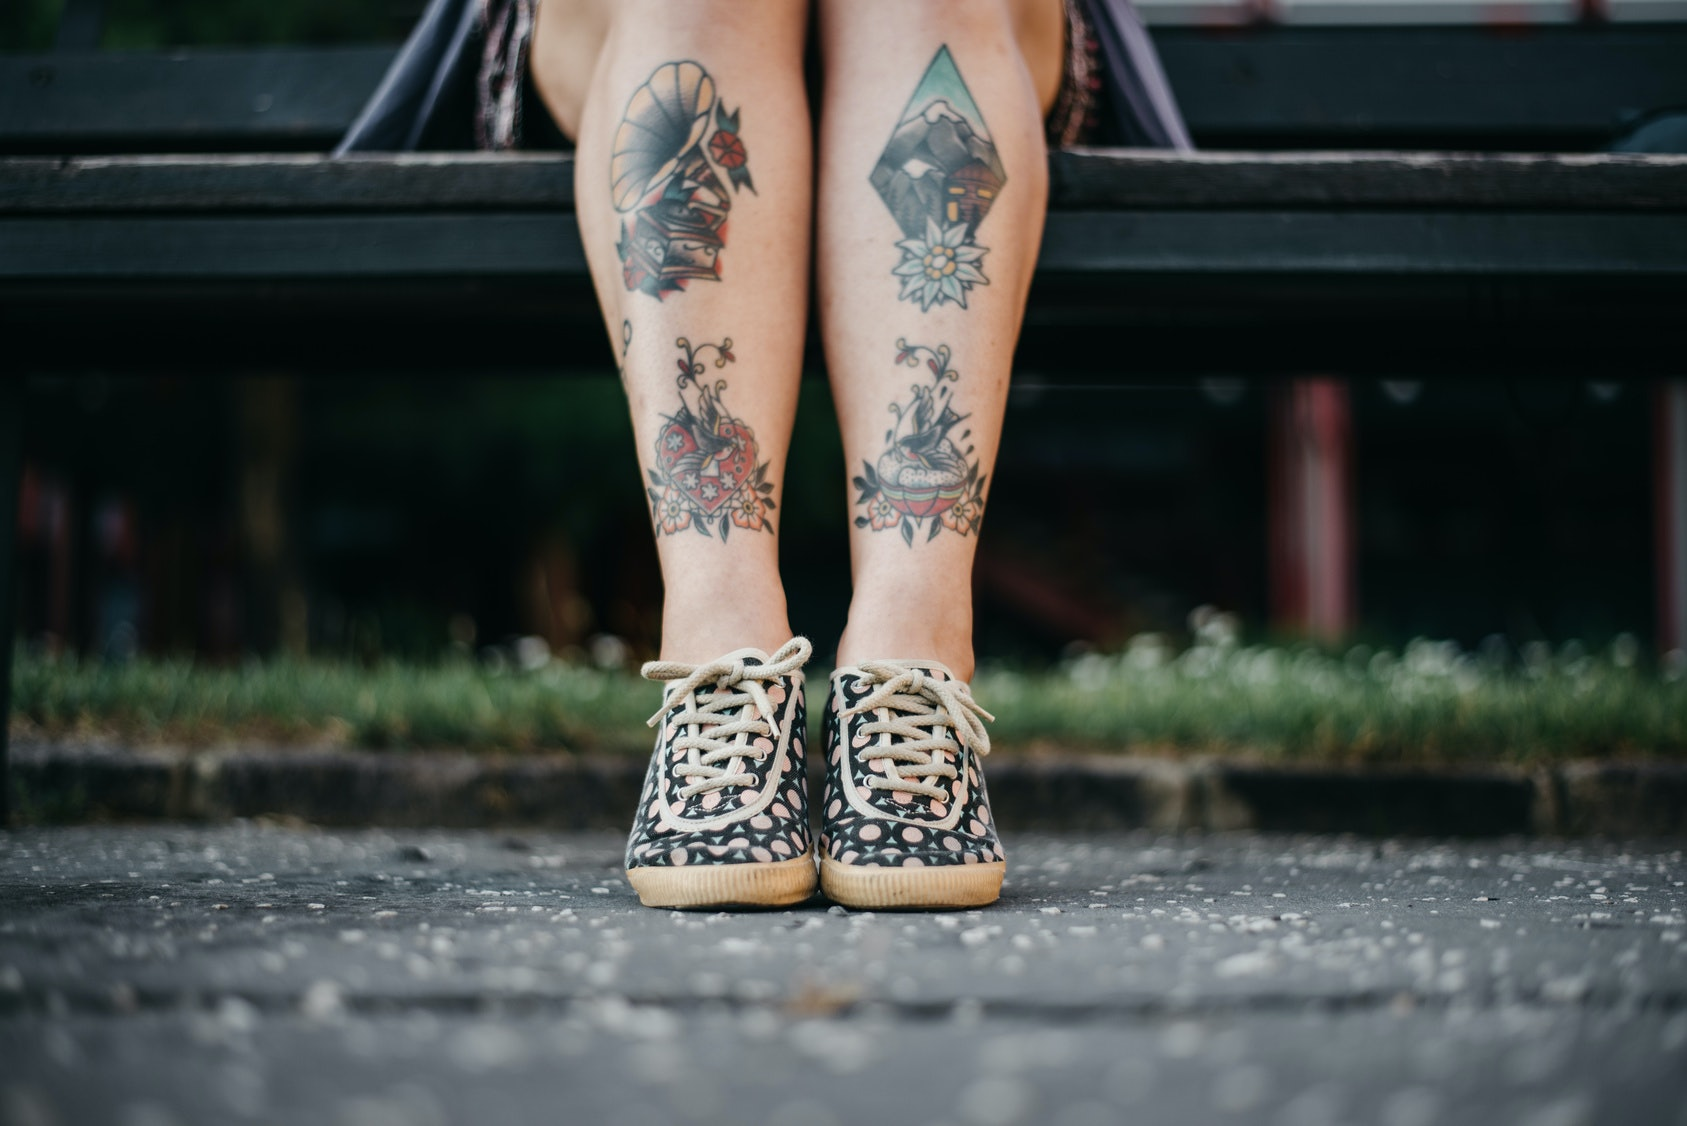 ba30badf9ed3b 7 Tattoos That Actually Look Better As You Age, According To Tattoo Artists